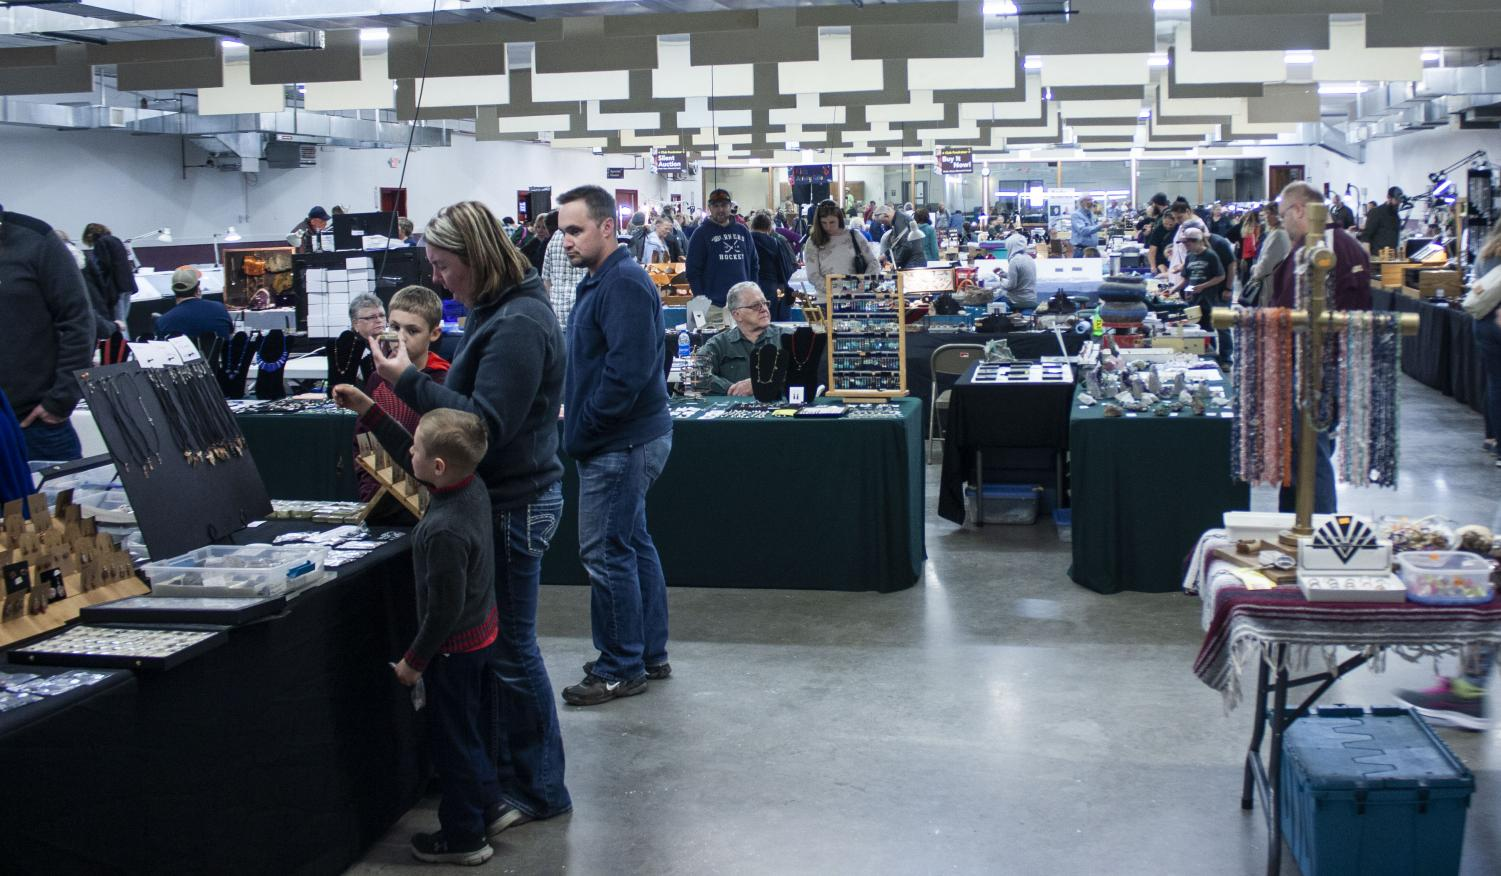 Vendors+and+buyers+alike+filled+the+Eau+Claire+Expo+Center+on+Saturday+and+Sunday+for+the+56th+annual+Chippewa+Valley+Gem+%26+Mineral+Society+show+and+sale.